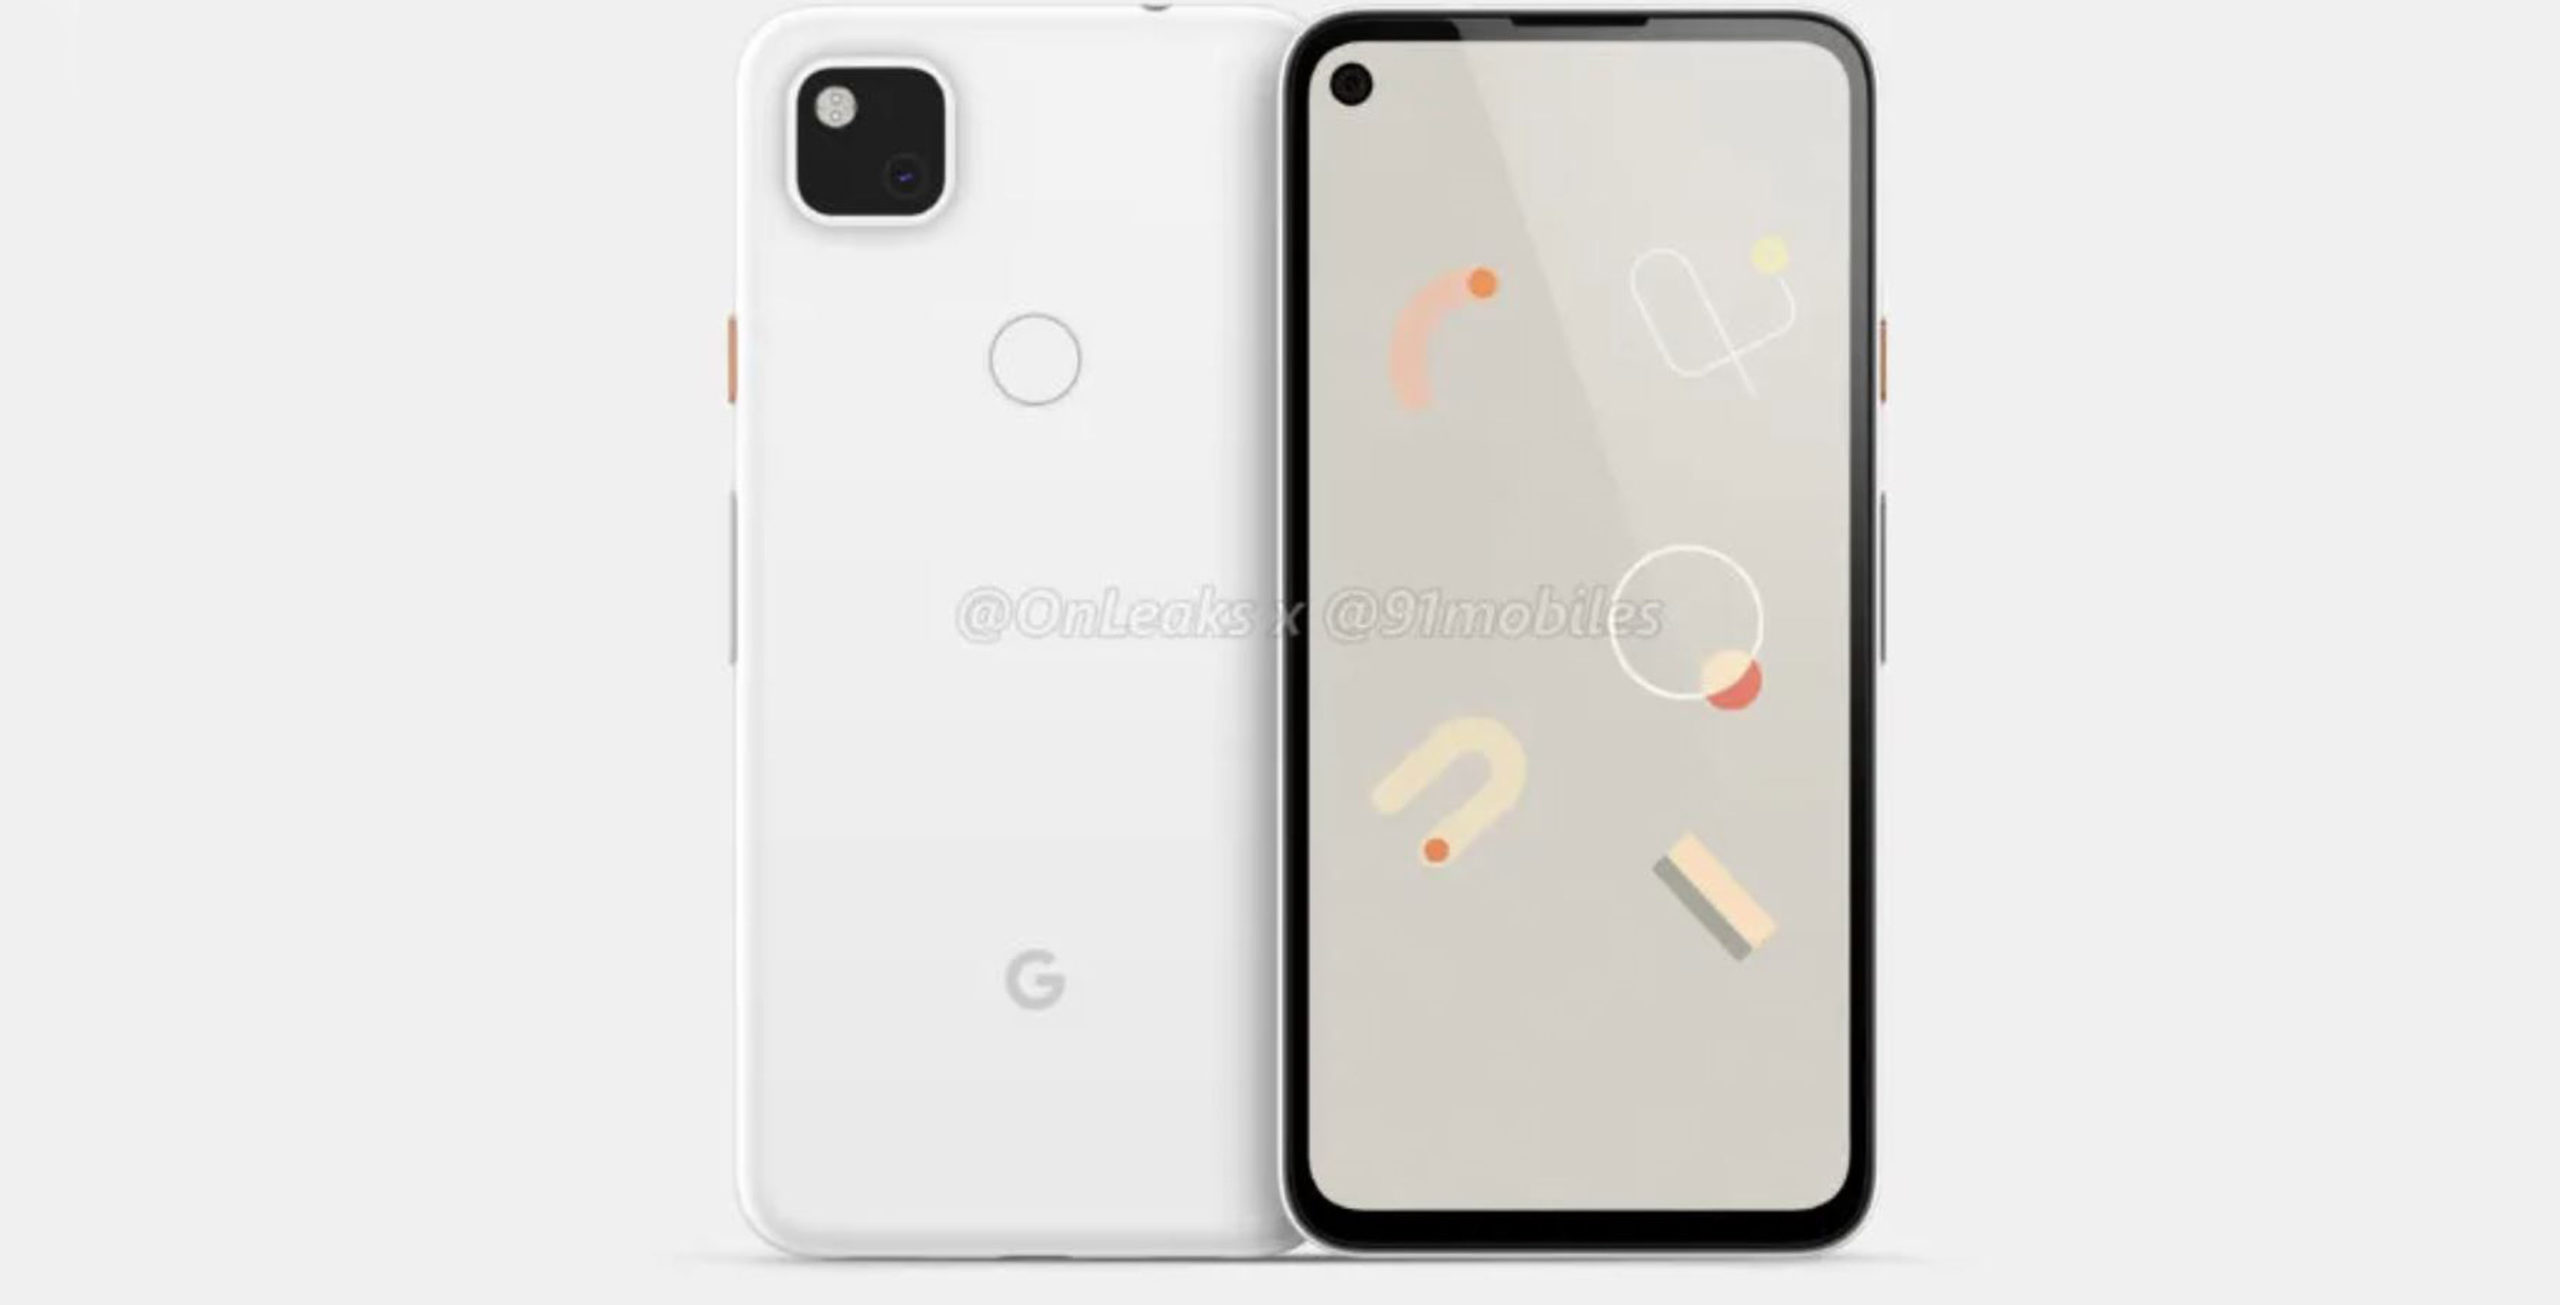 Google might have a 5G version of the Pixel 4a this year